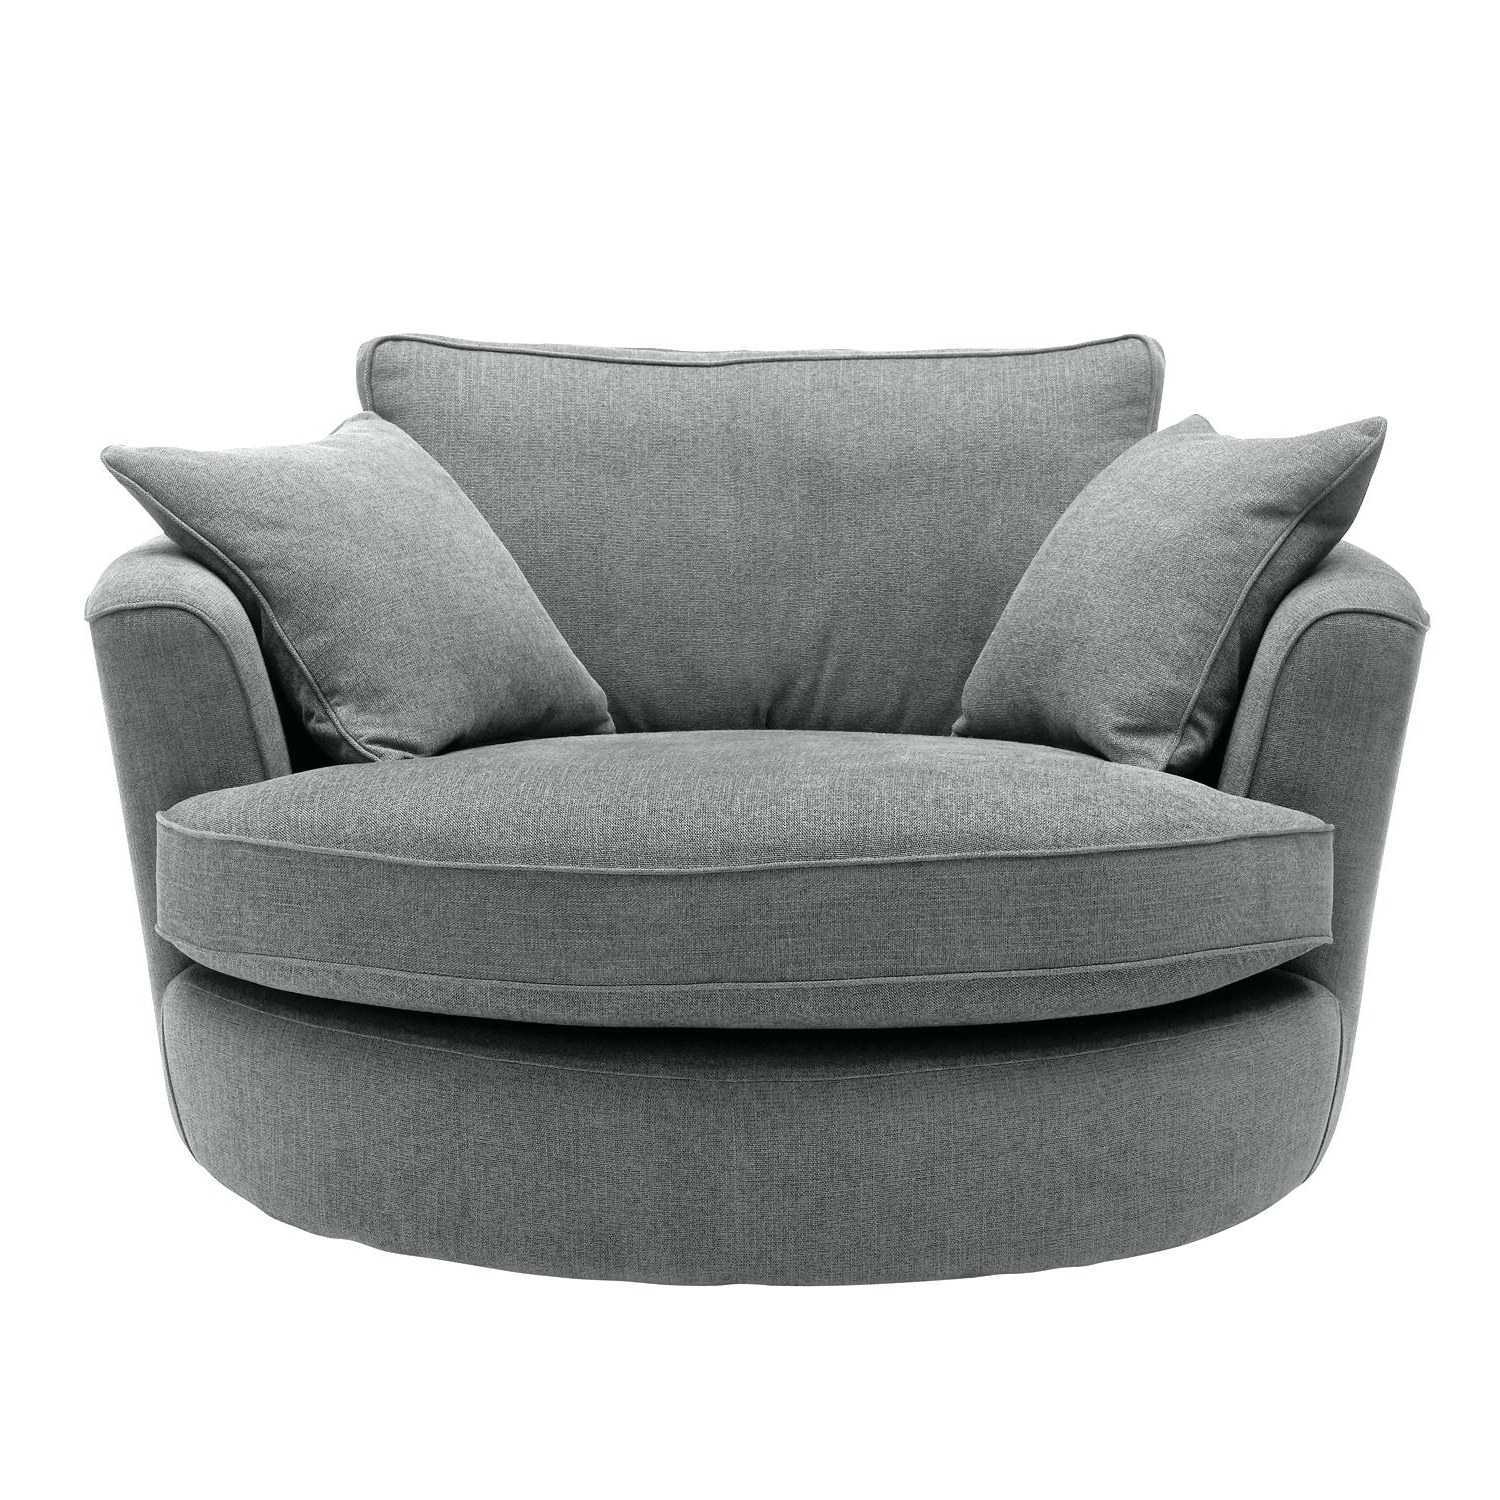 2018 Circle Sofas For Circle Sofa Chair Furniture Sectional Sofas King Copley (View 1 of 20)